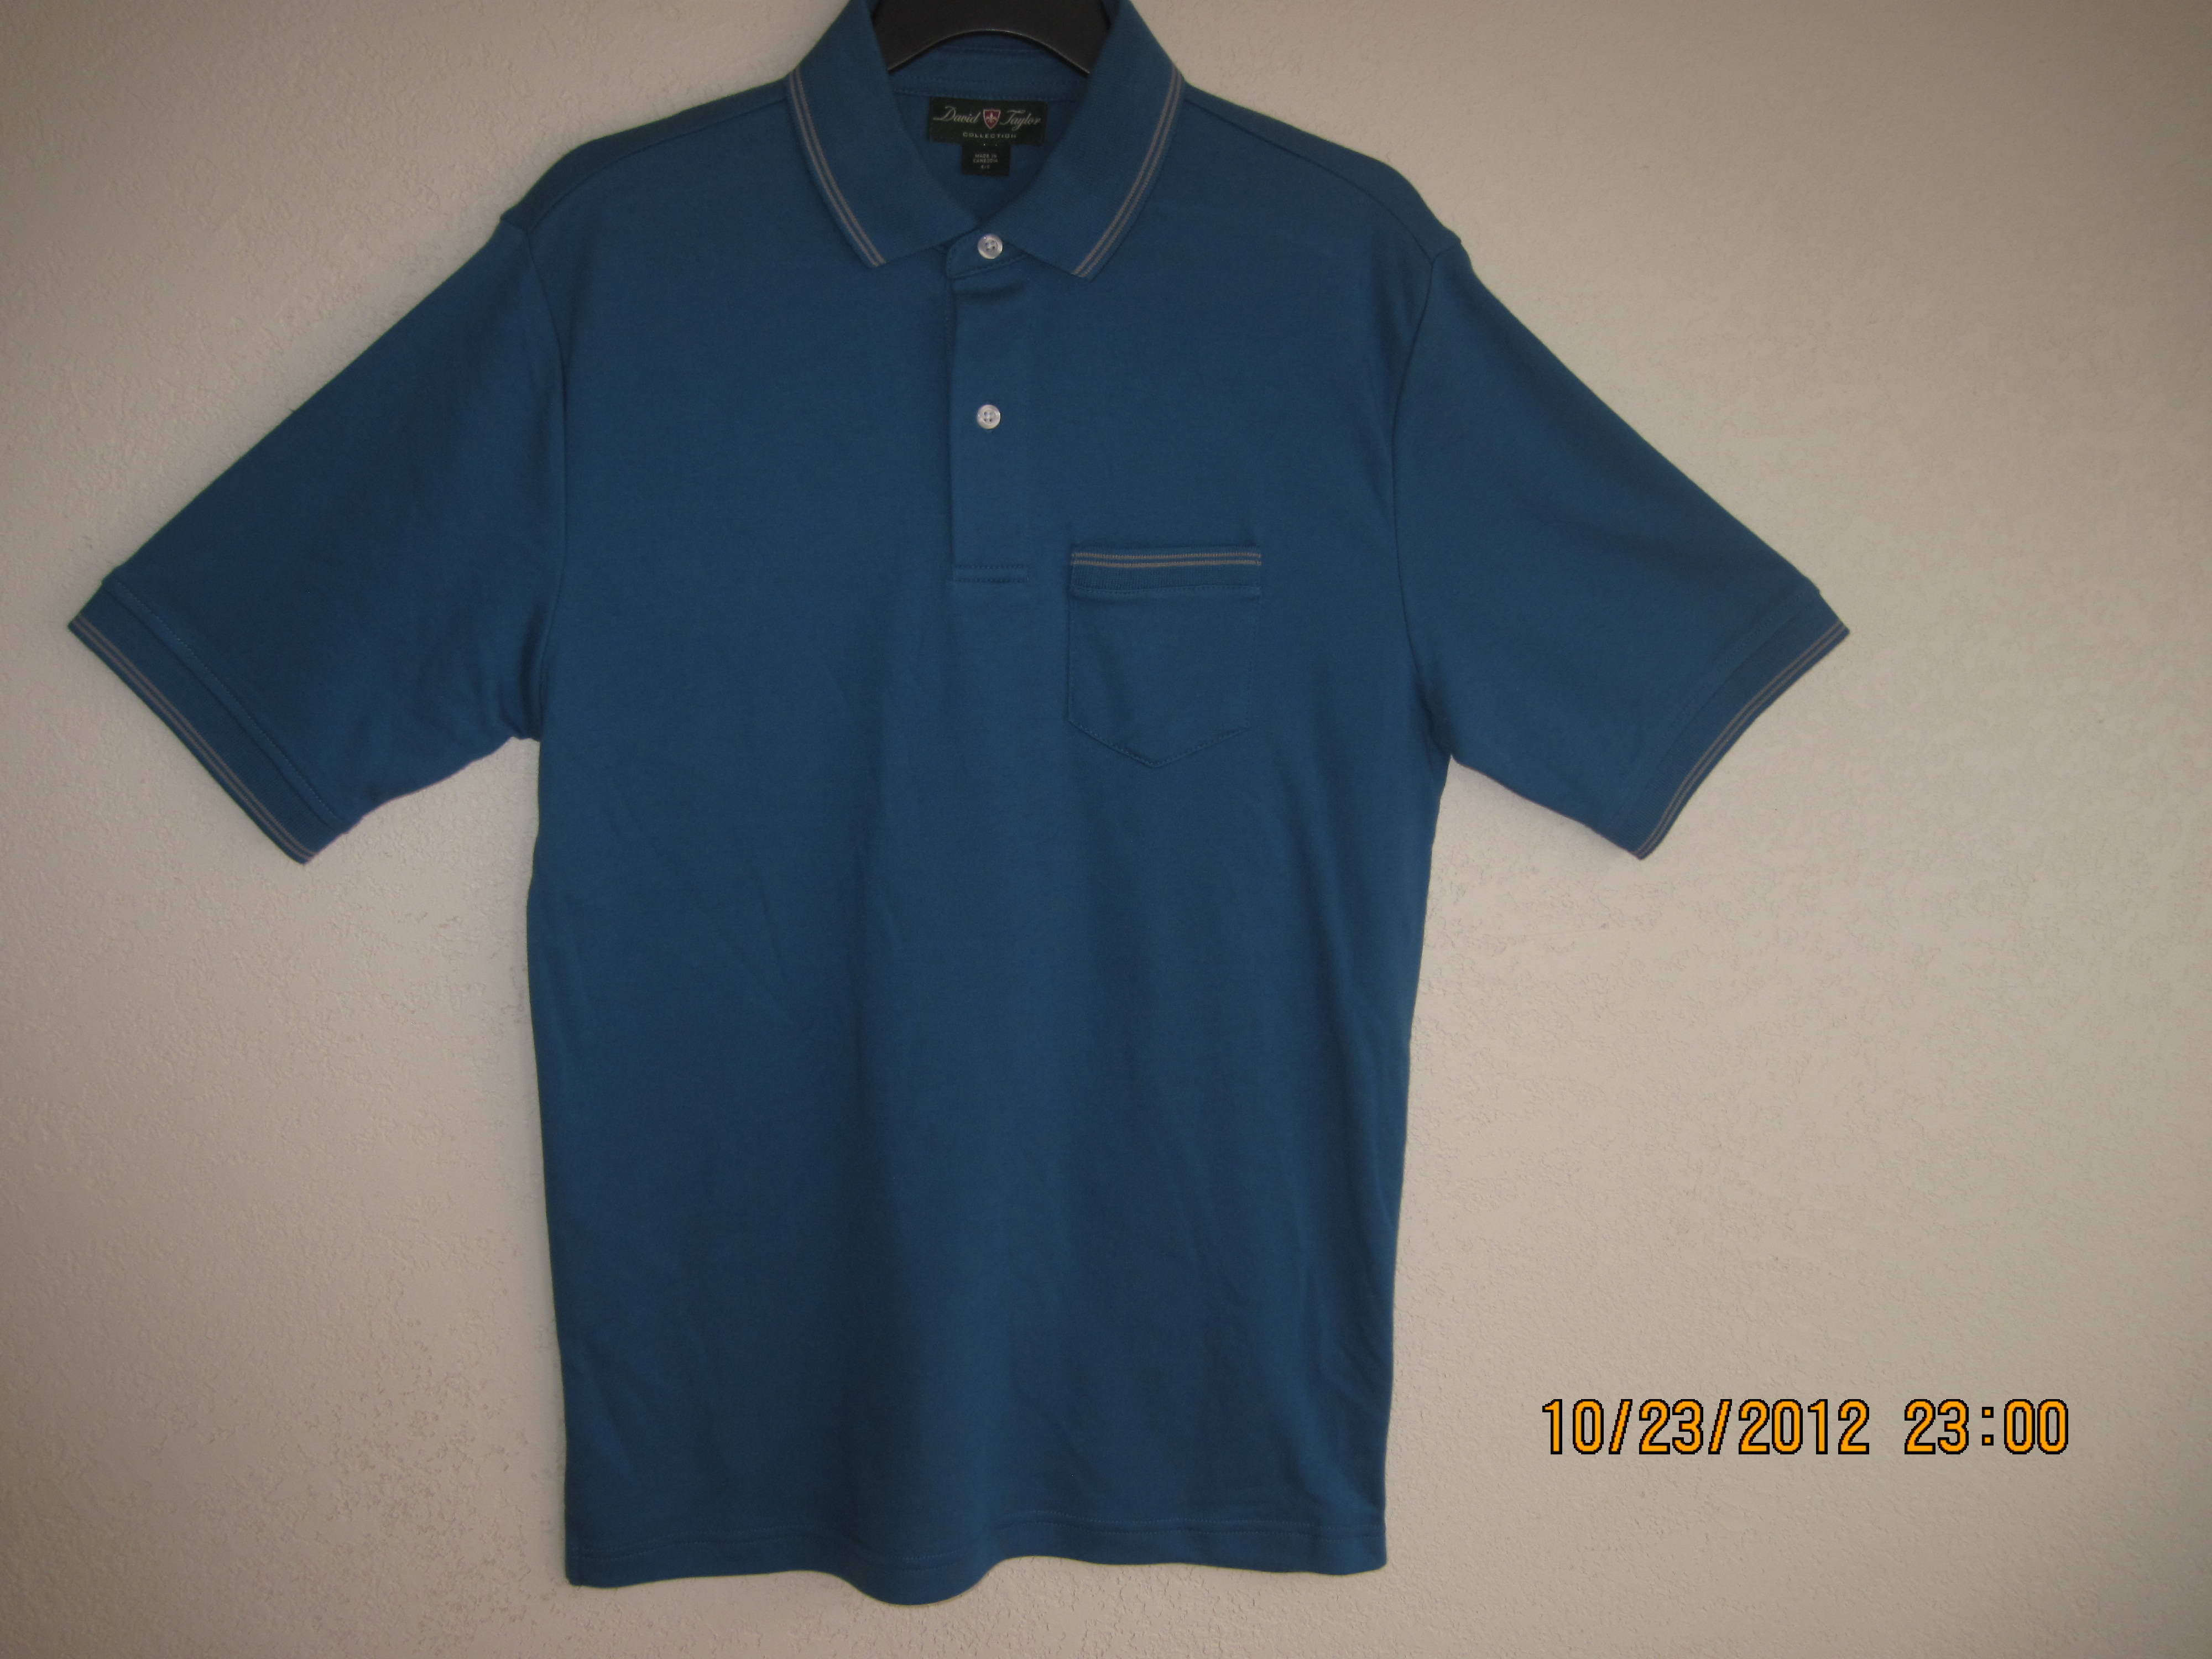 David Taylor Sz S Mens Tipped Polo Shirt (Blue & Gray)